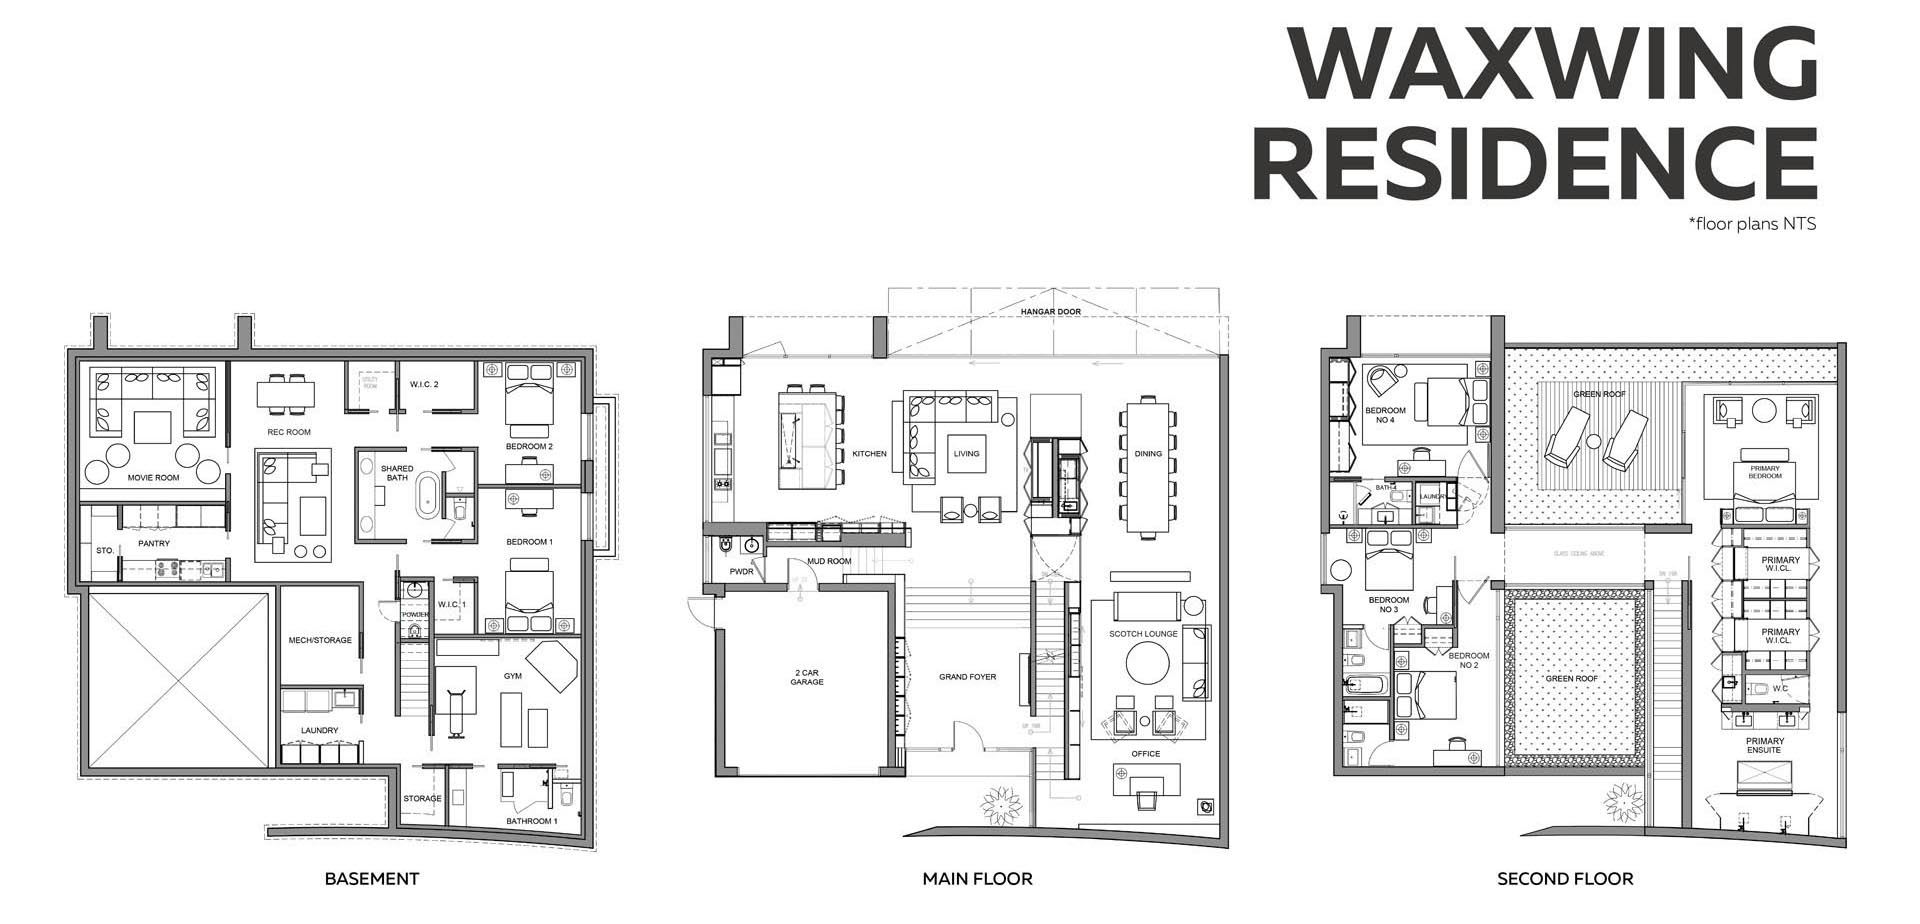 The floor plan of a modern home with three levels.